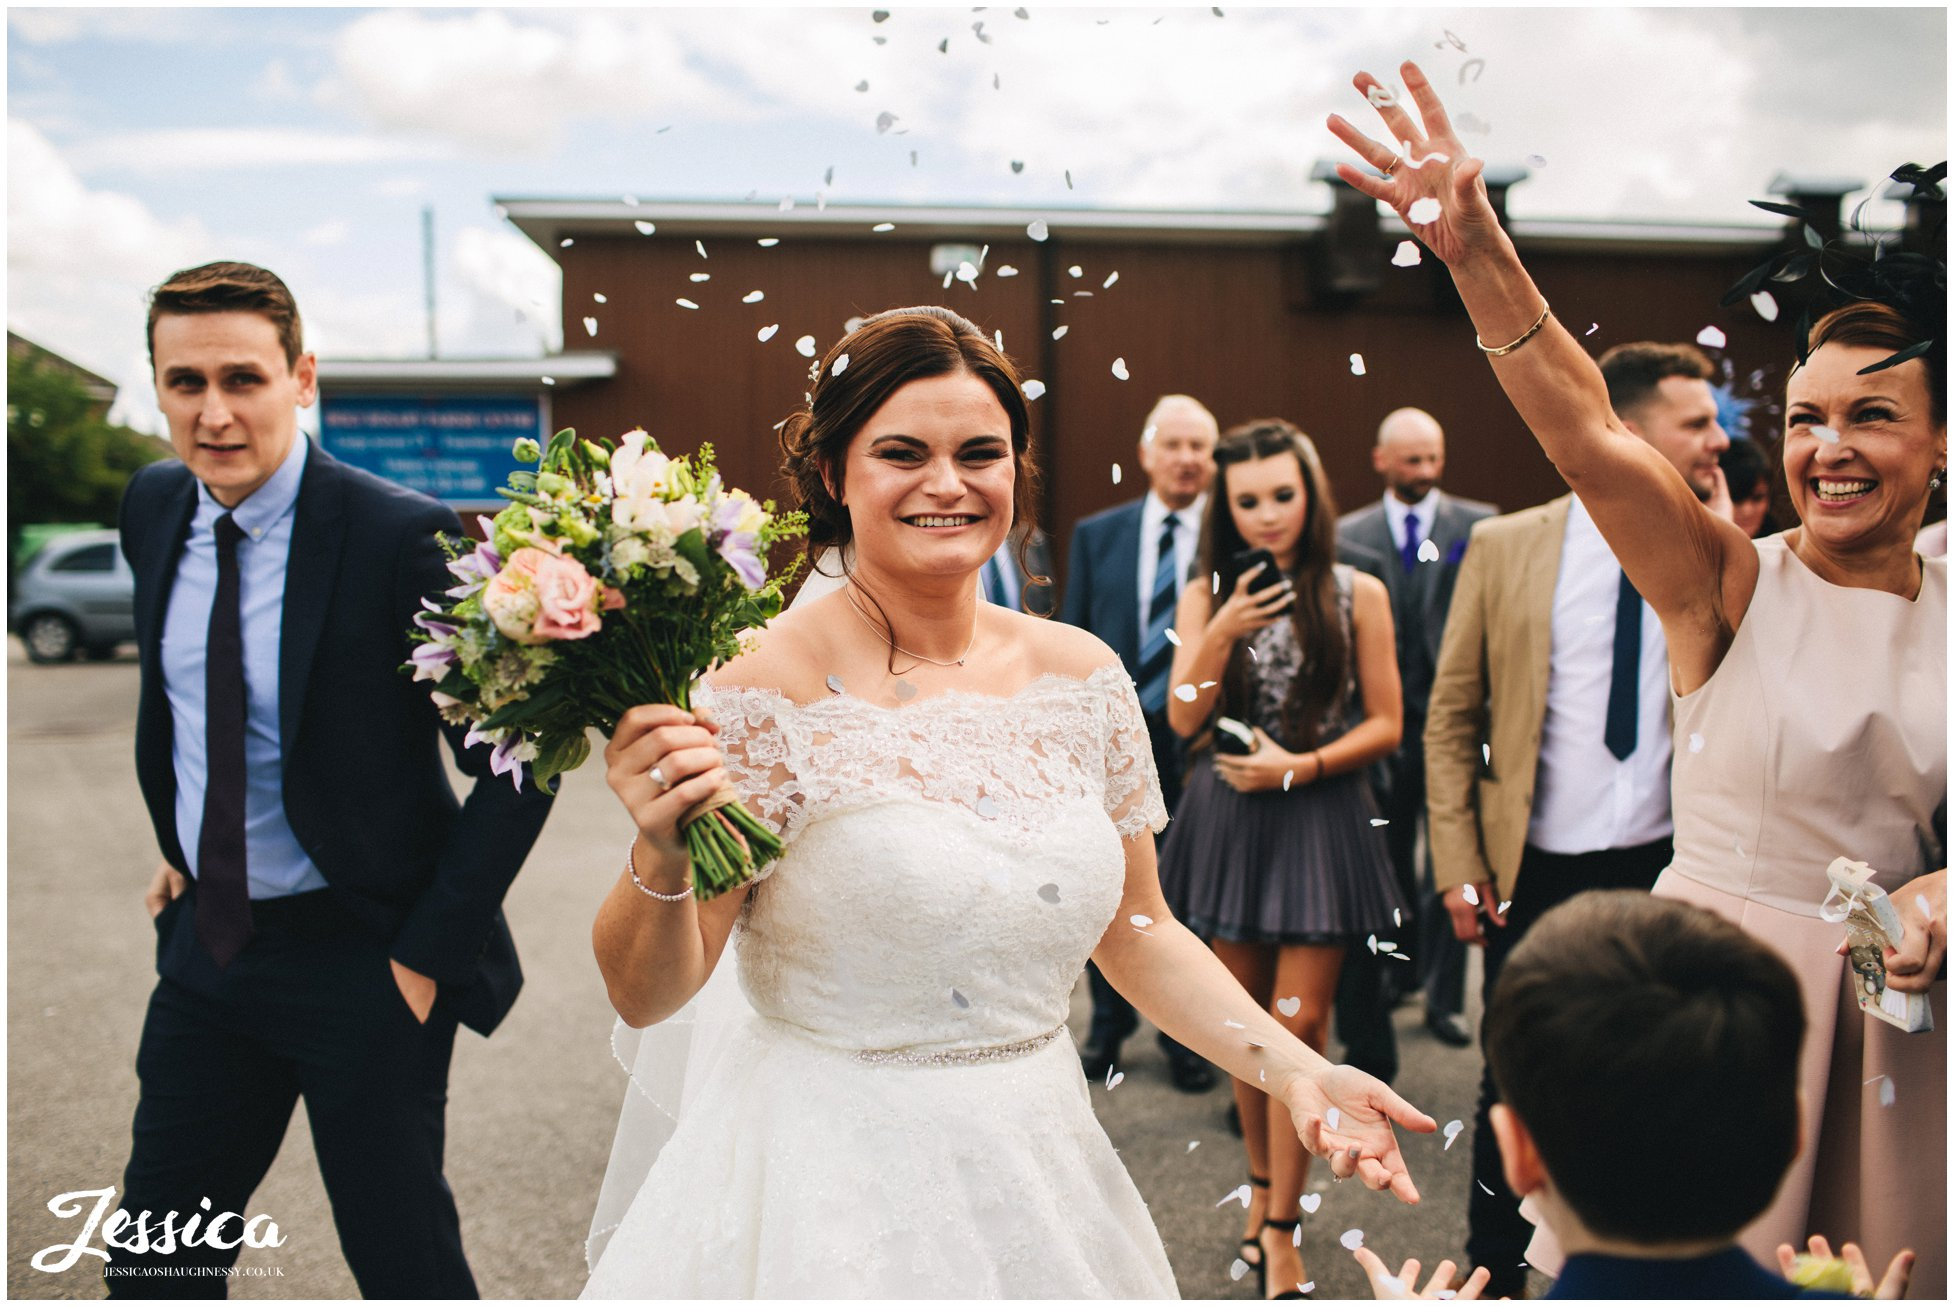 guests throw confetti over the bride